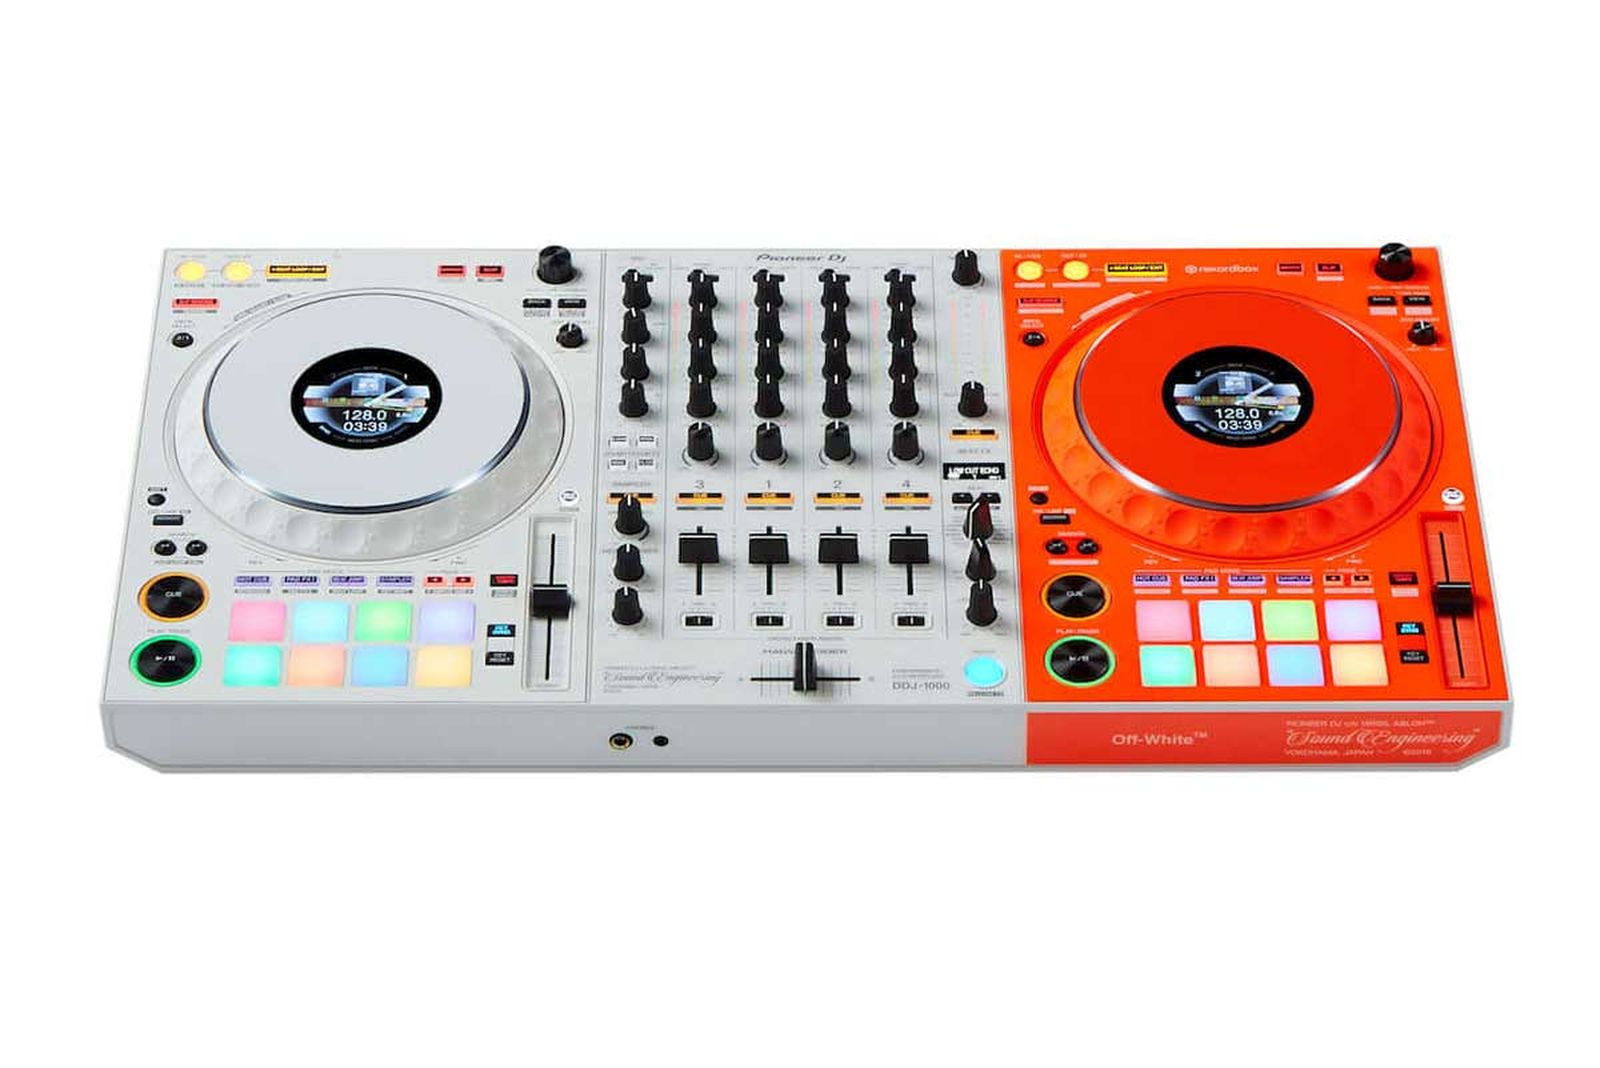 off-white-pioneer-dj-controller-apparel-collab- (2)